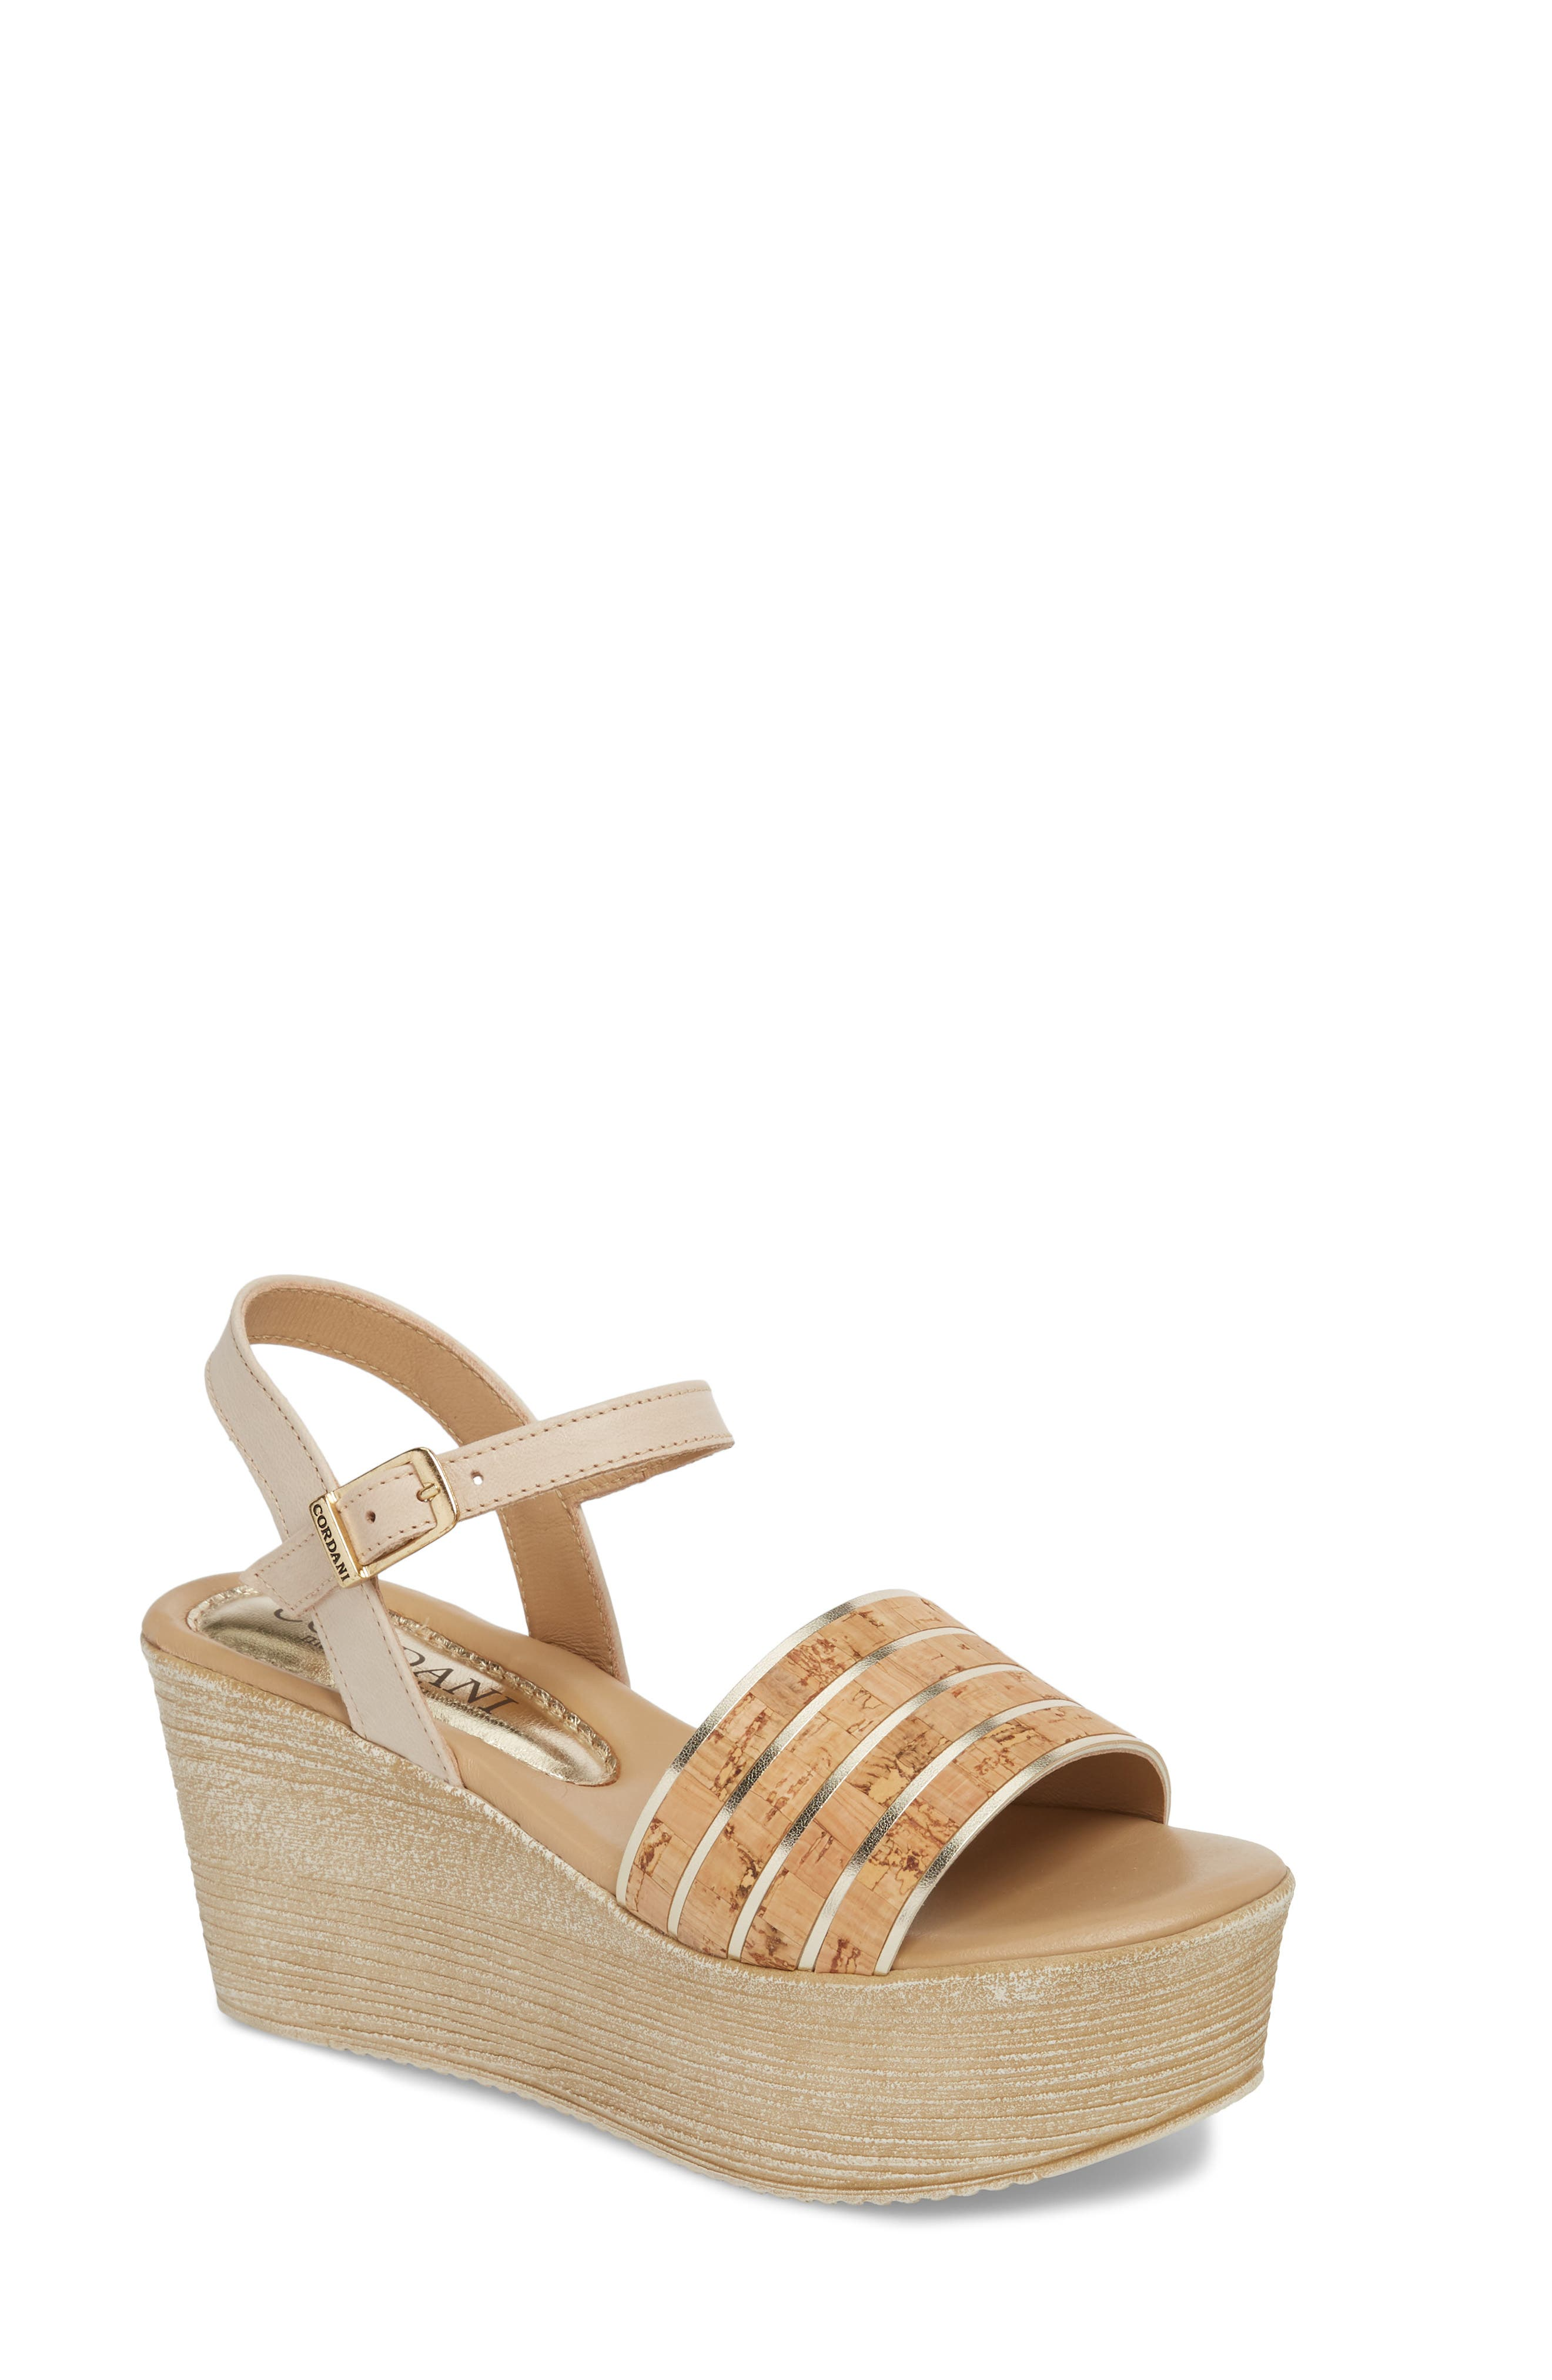 Jaida Platform Wedge Sandal,                             Main thumbnail 1, color,                             Cork/ Gold